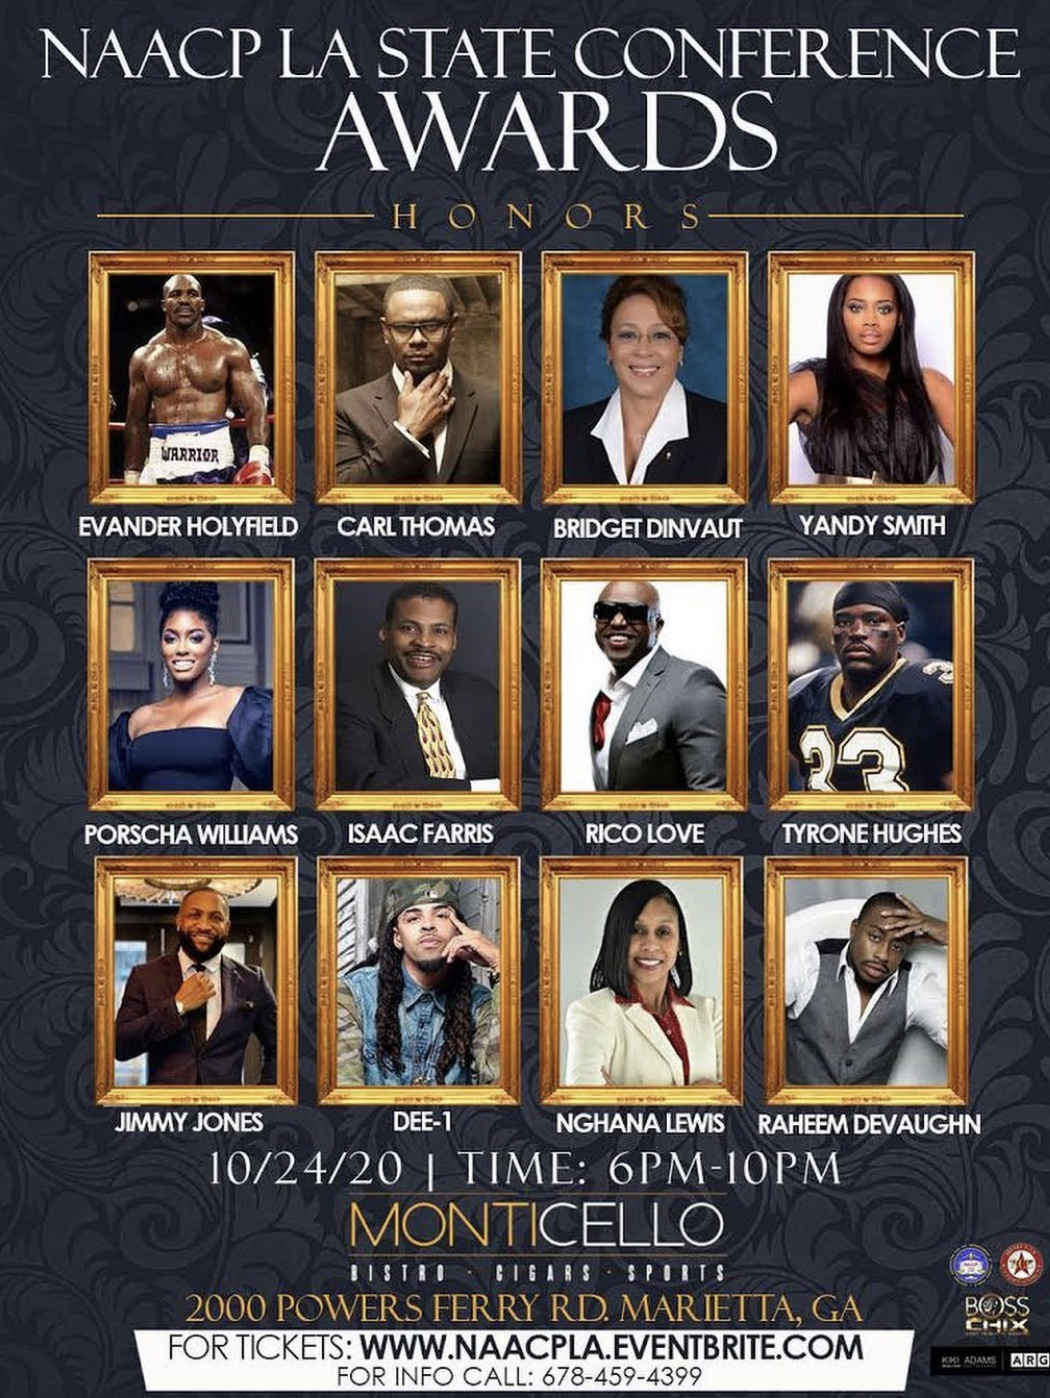 ABC Productions & Boss Chix ATL Present The NAACP State Conference - Power of Influence Awards October 24, 2020